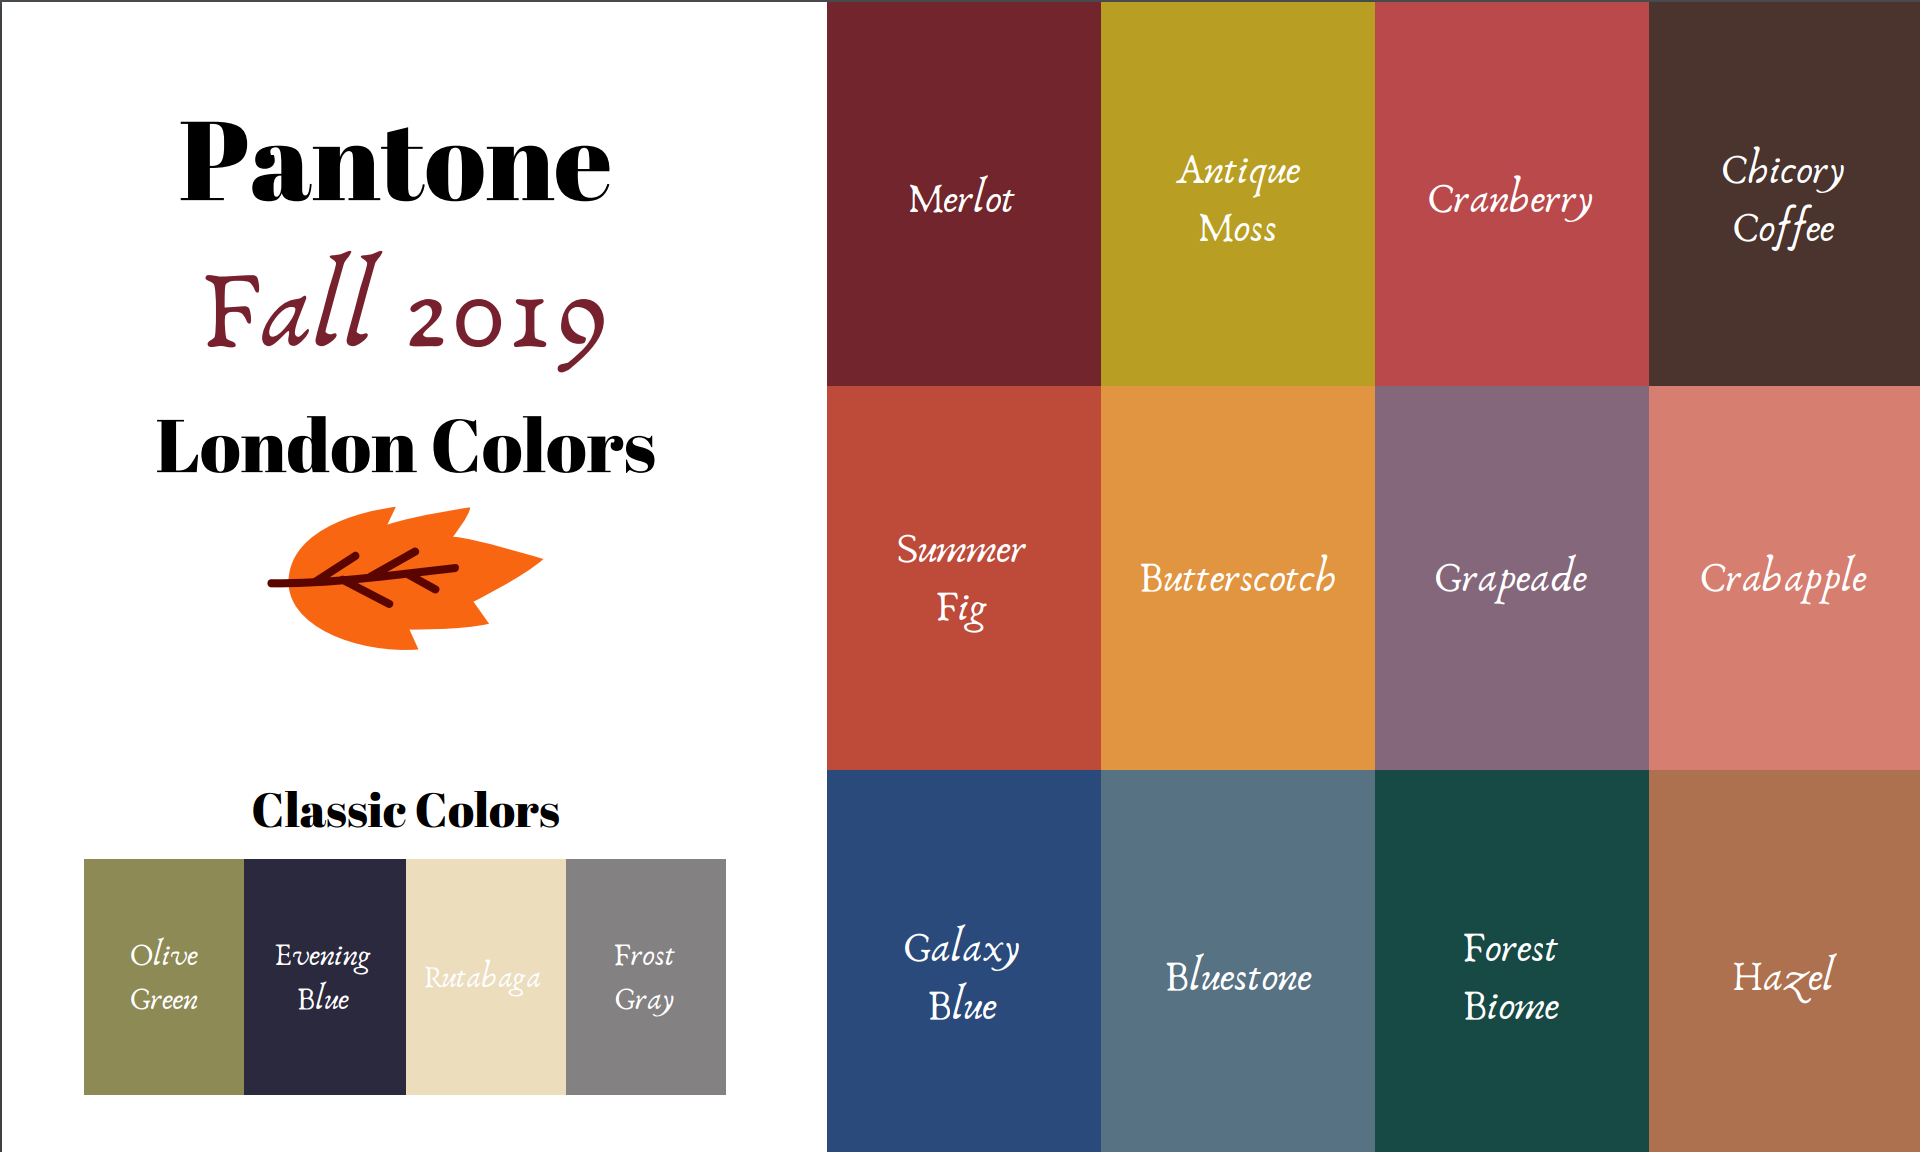 Pantone - Autumn/Winter - 2019 - London Palette